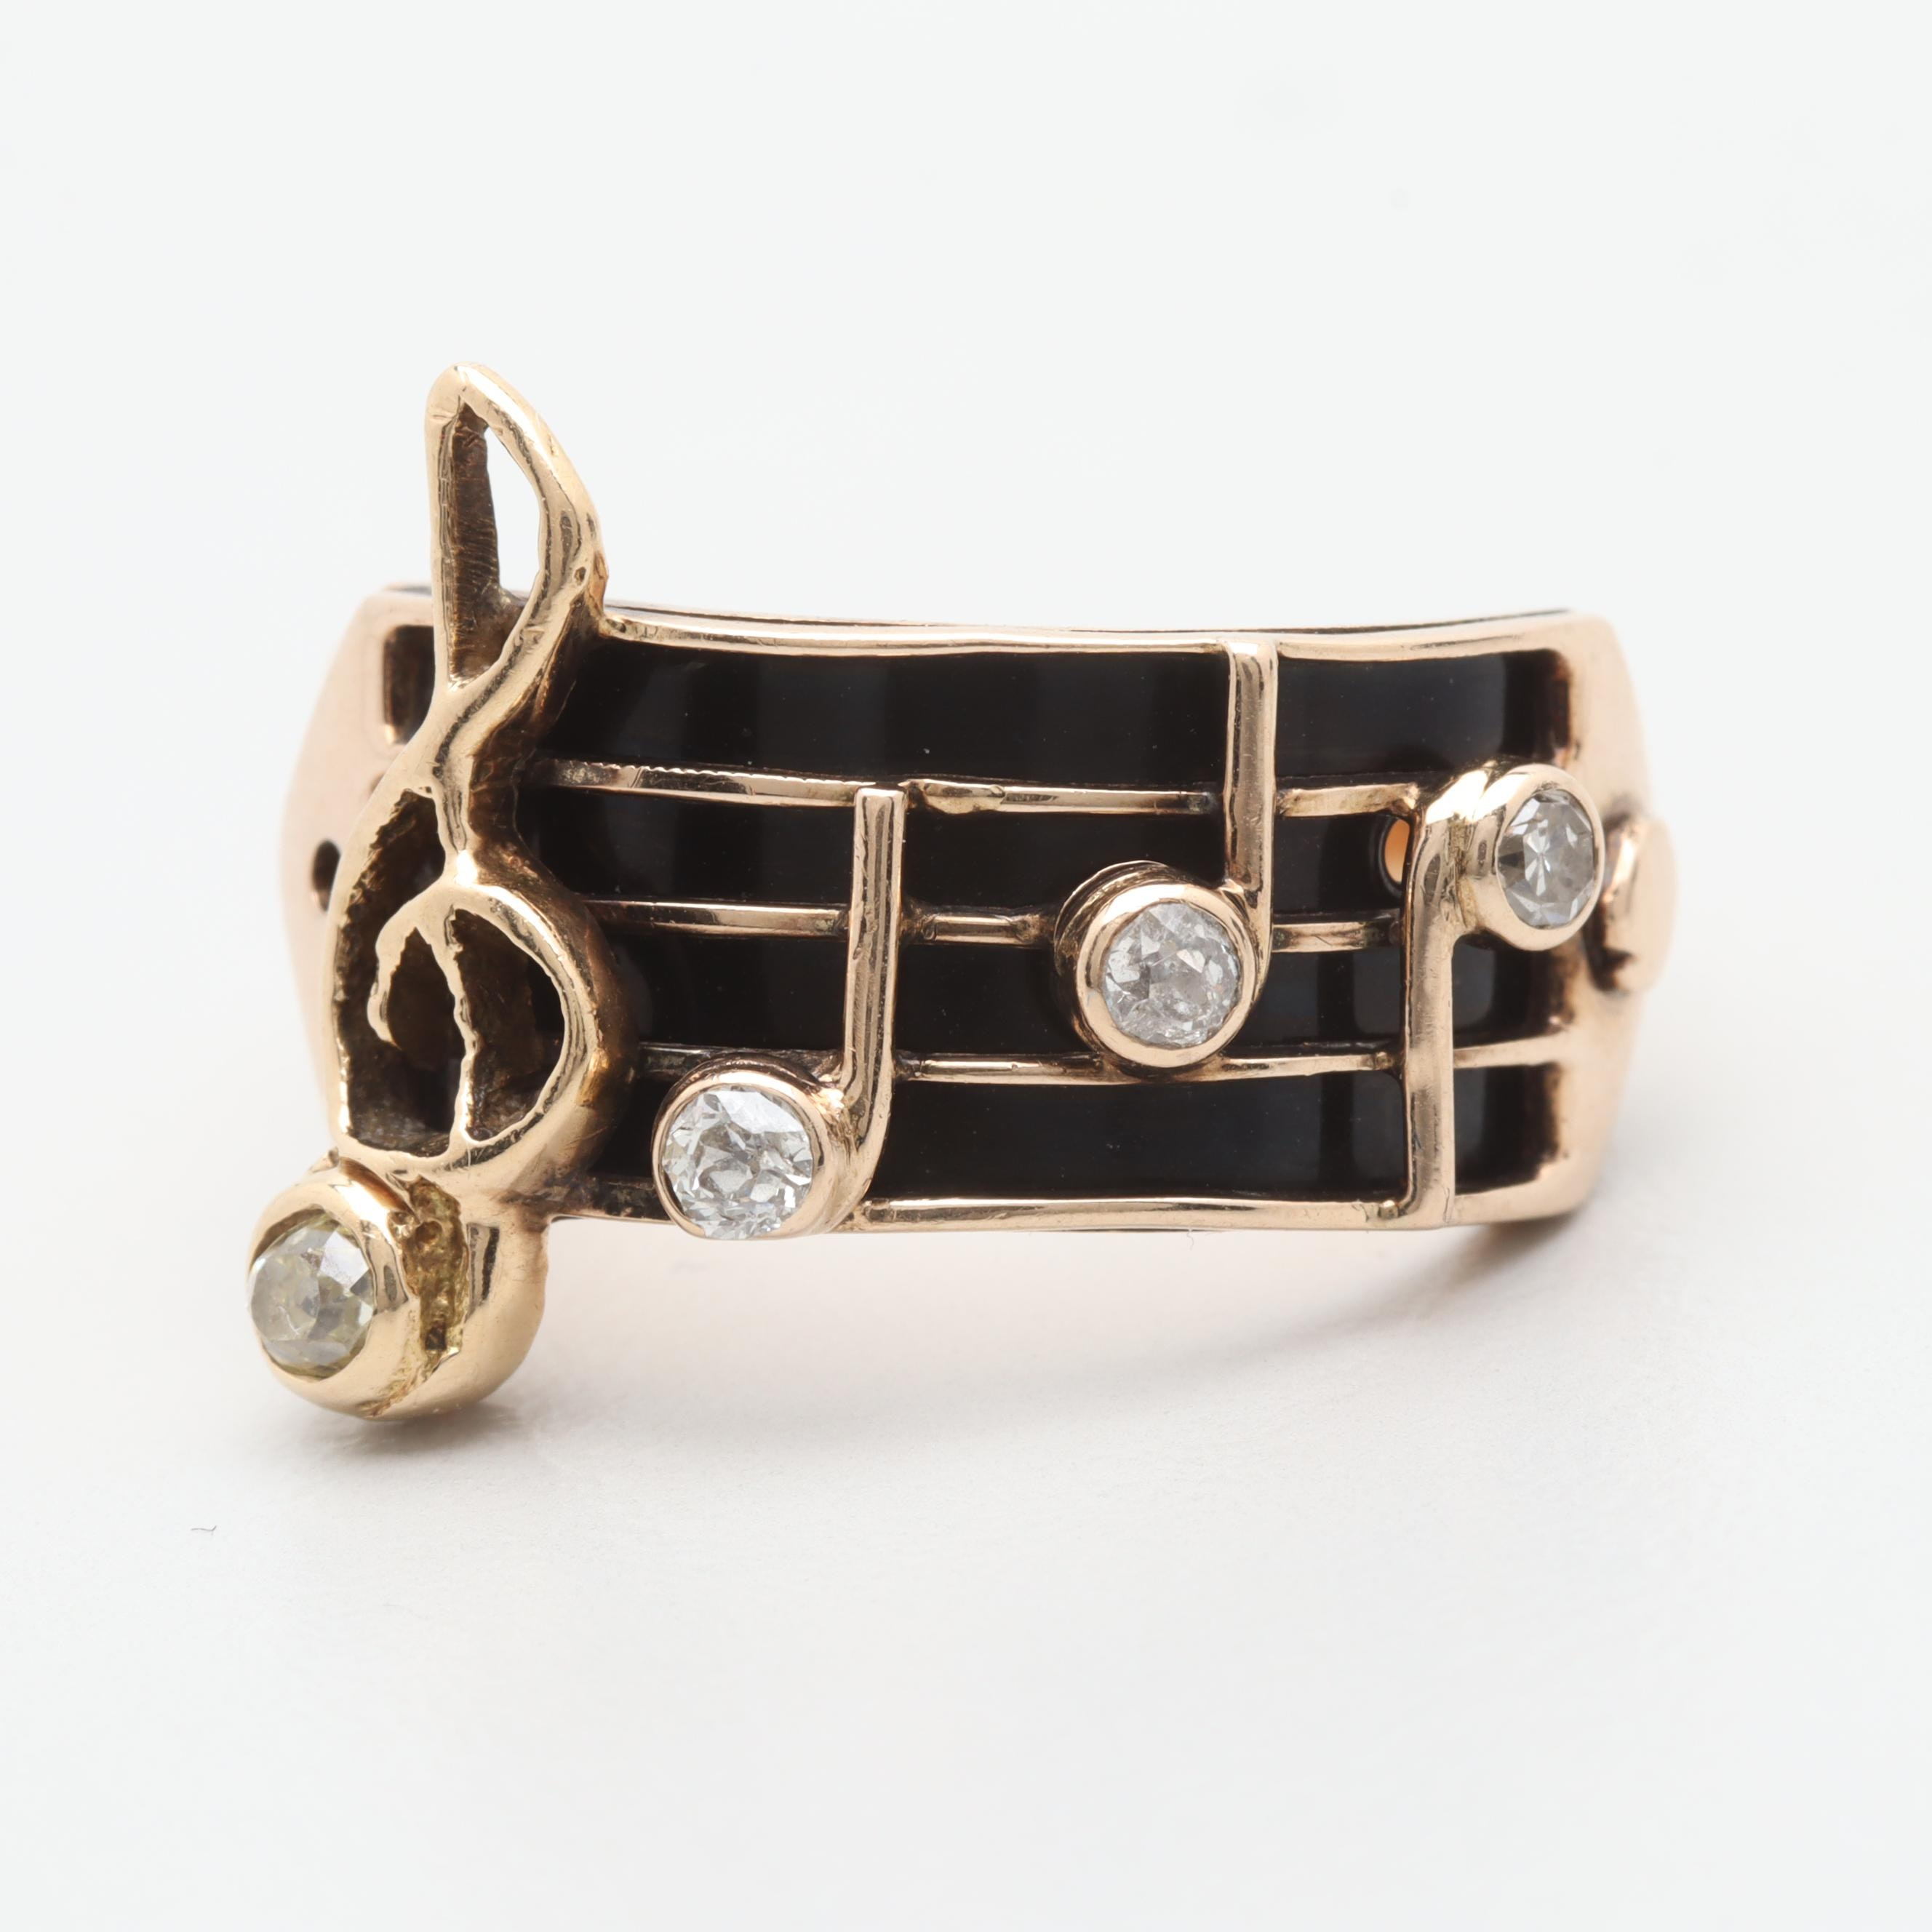 Vintage 14K Yellow Gold Diamond and Enamel Music Scale Ring